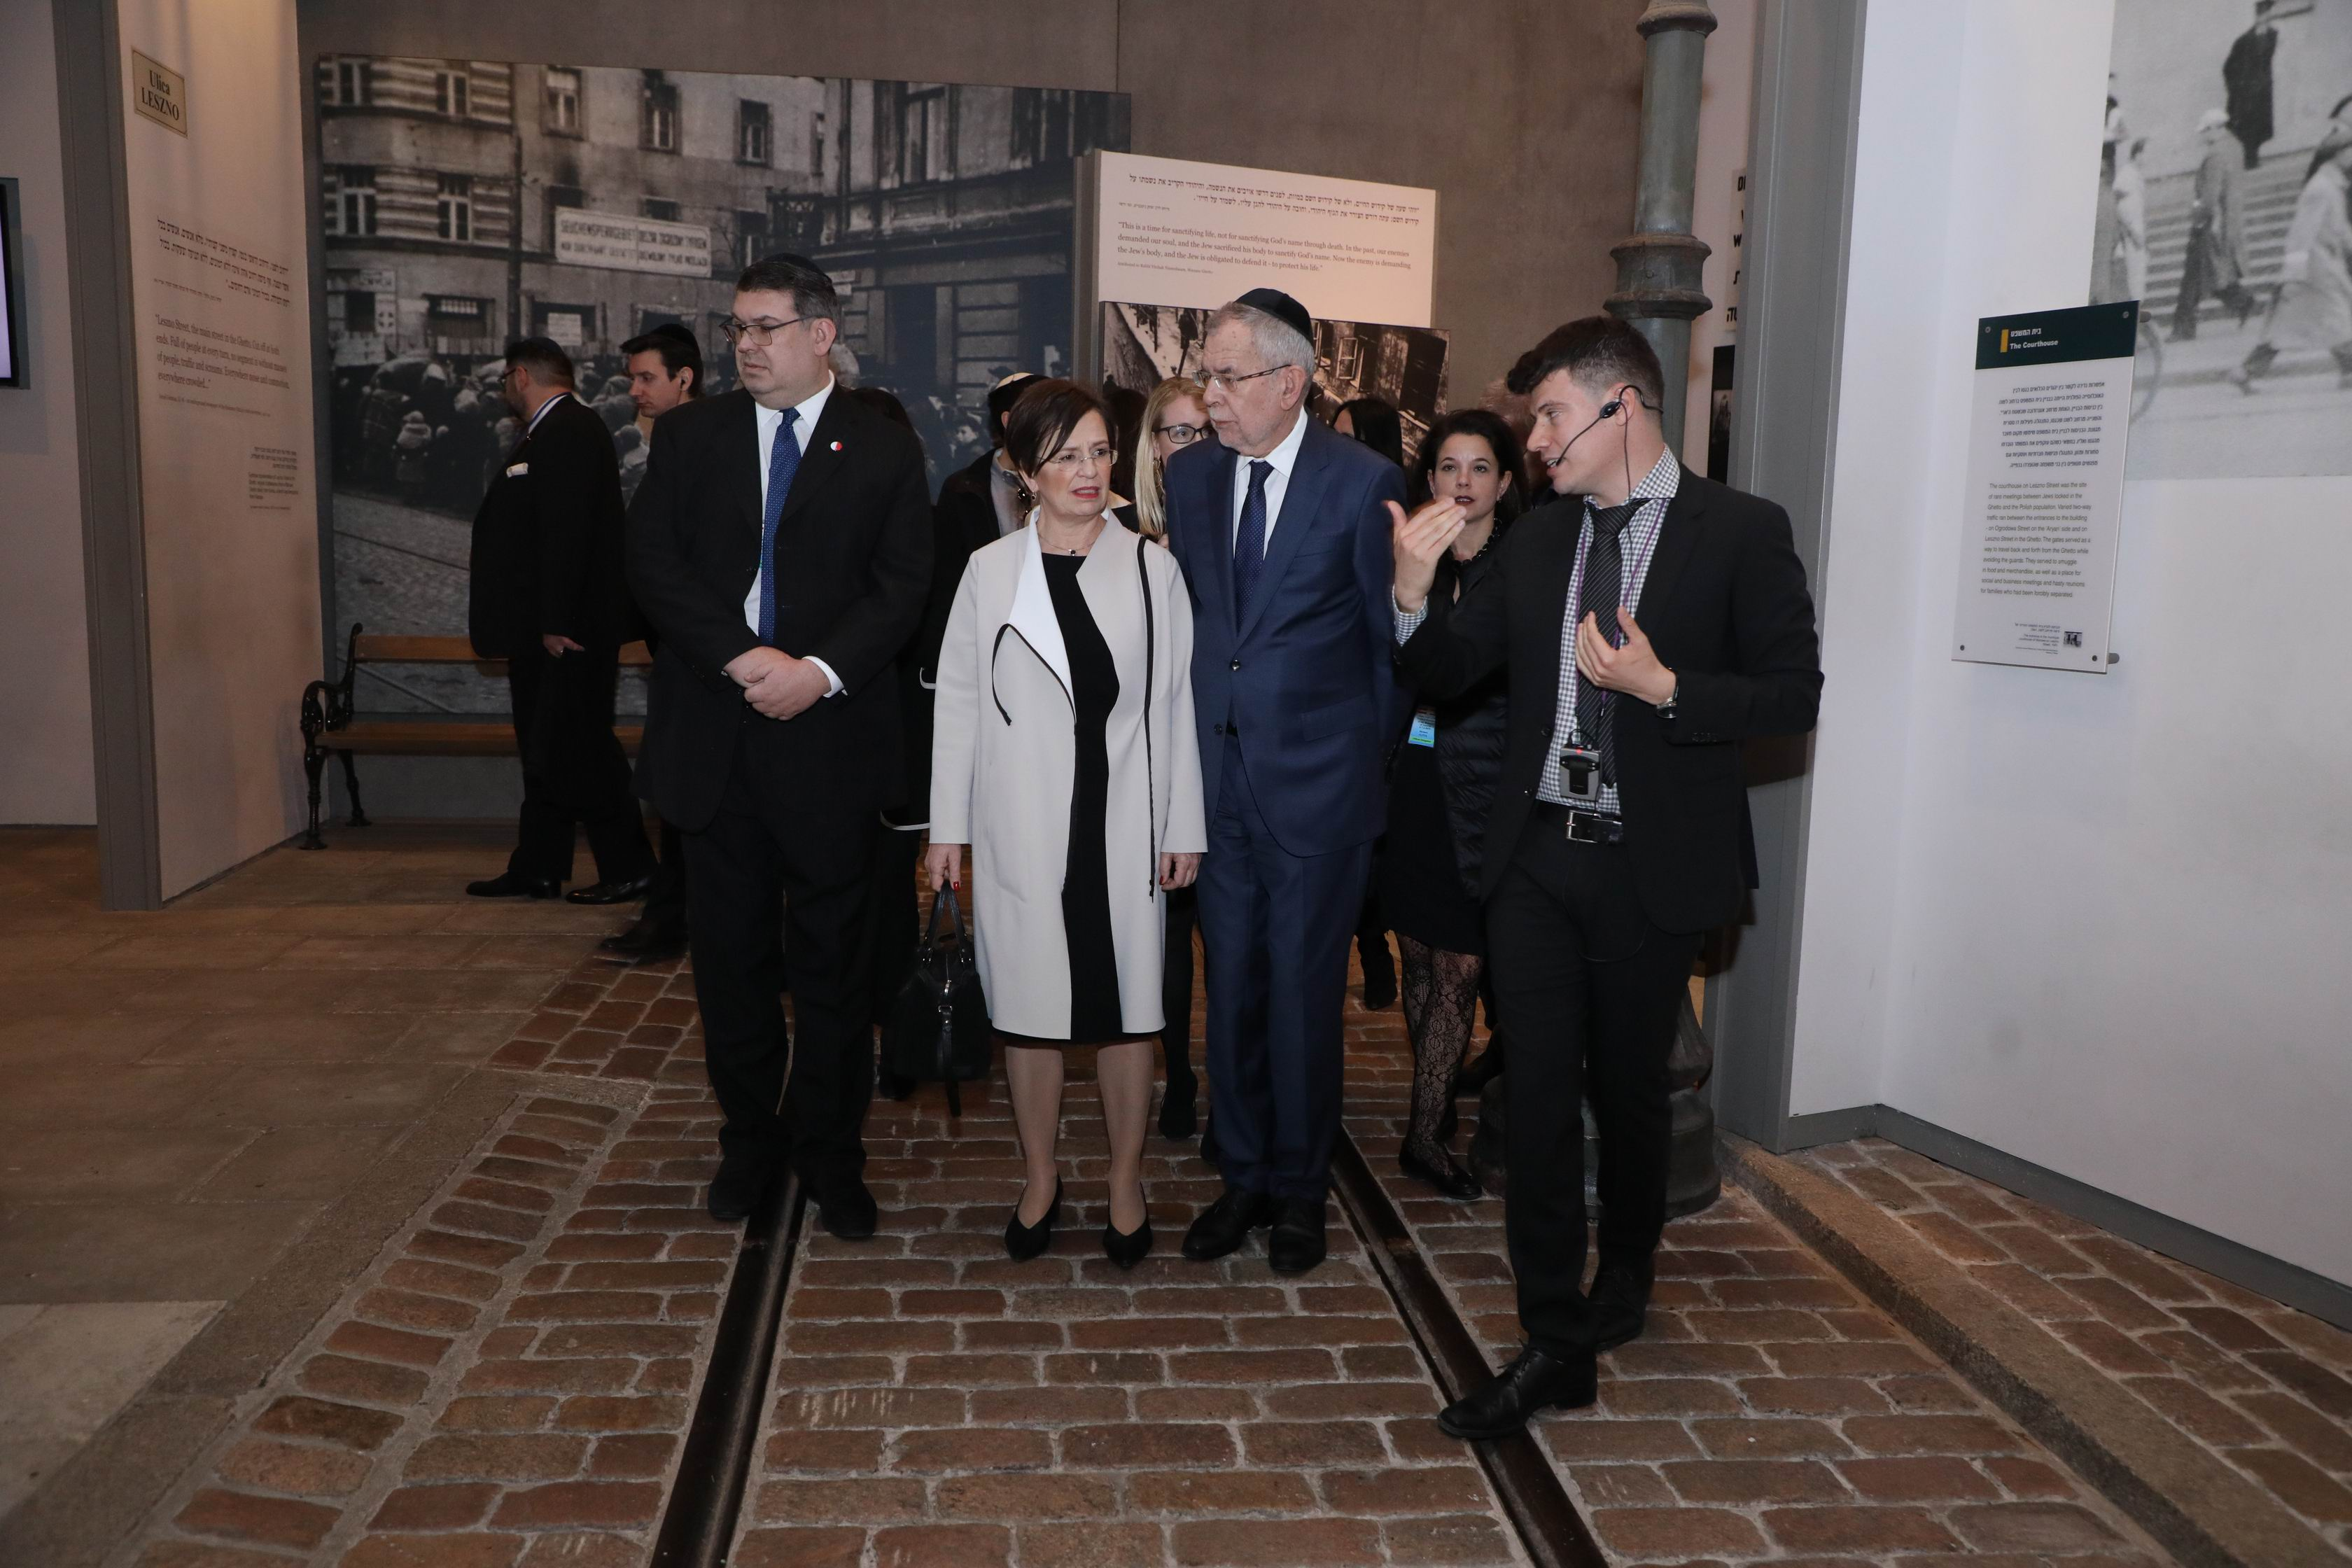 The President of Austria and his wife Doris Schmidauer toured the Holocaust History Museum, including a reconstruction of Leszno Street in the Warsaw ghetto